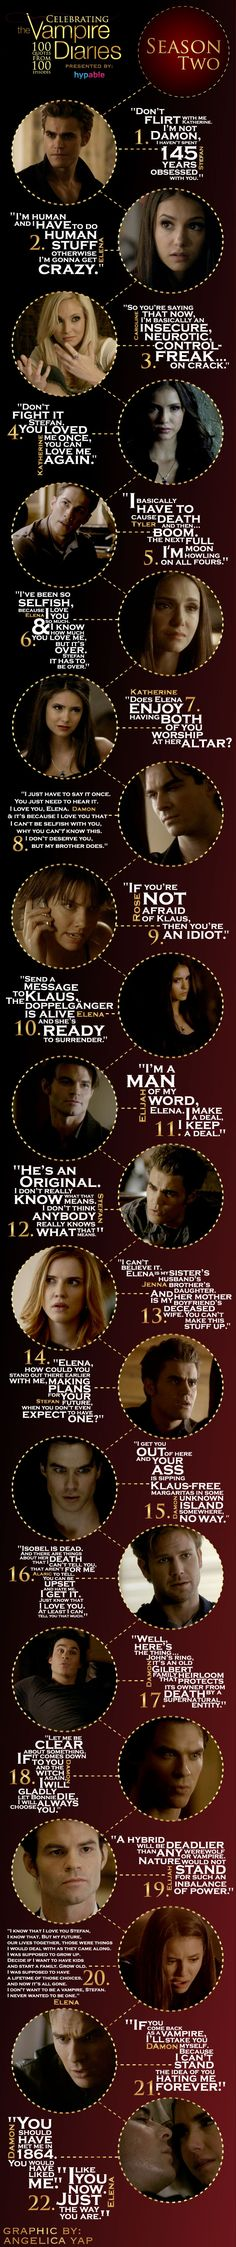 'The Vampire Diaries' quotes: The best of season 2 http://sulia.com/channel/vampire-diaries/f/ecad8251-0c56-4091-ad41-97d88eb1be58/?source=pin&action=share&btn=small&form_factor=desktop&pinner=54575851 #TVD #vampirediaries